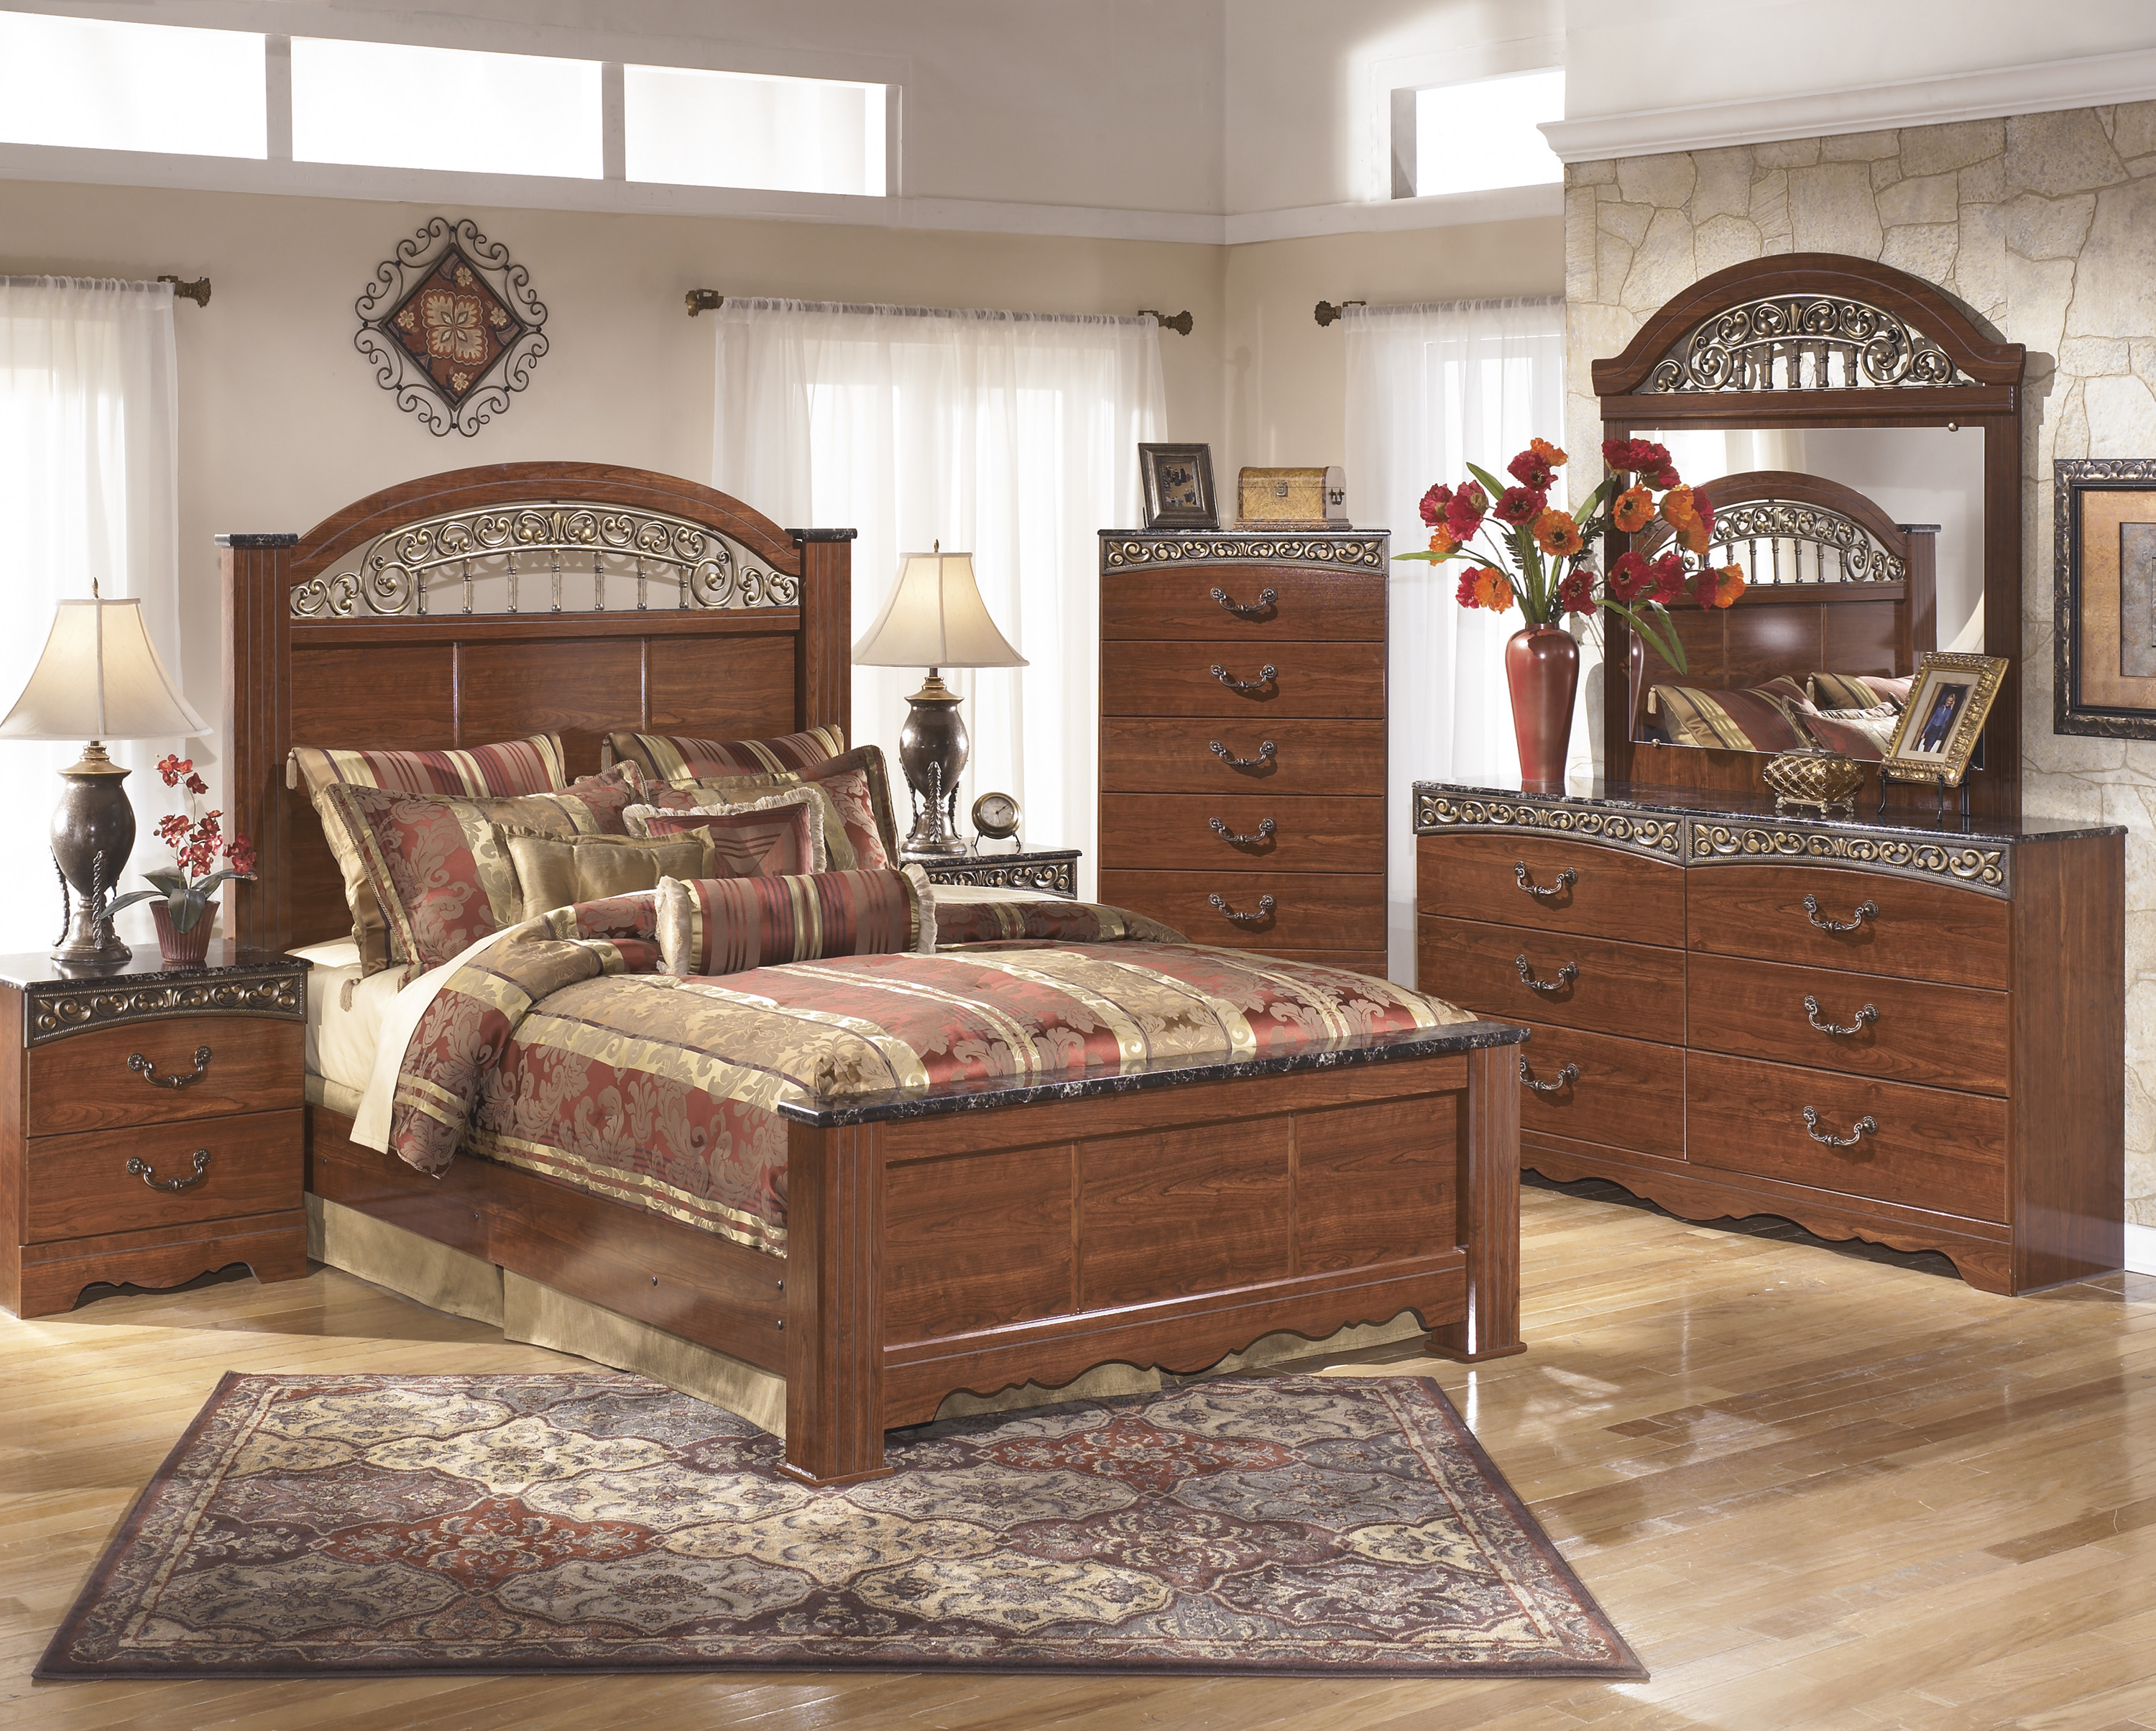 fairbrooks estate pc poster bedroom set queen bedroom sets orlando cavallino queen storage bedroom set ashley furniture